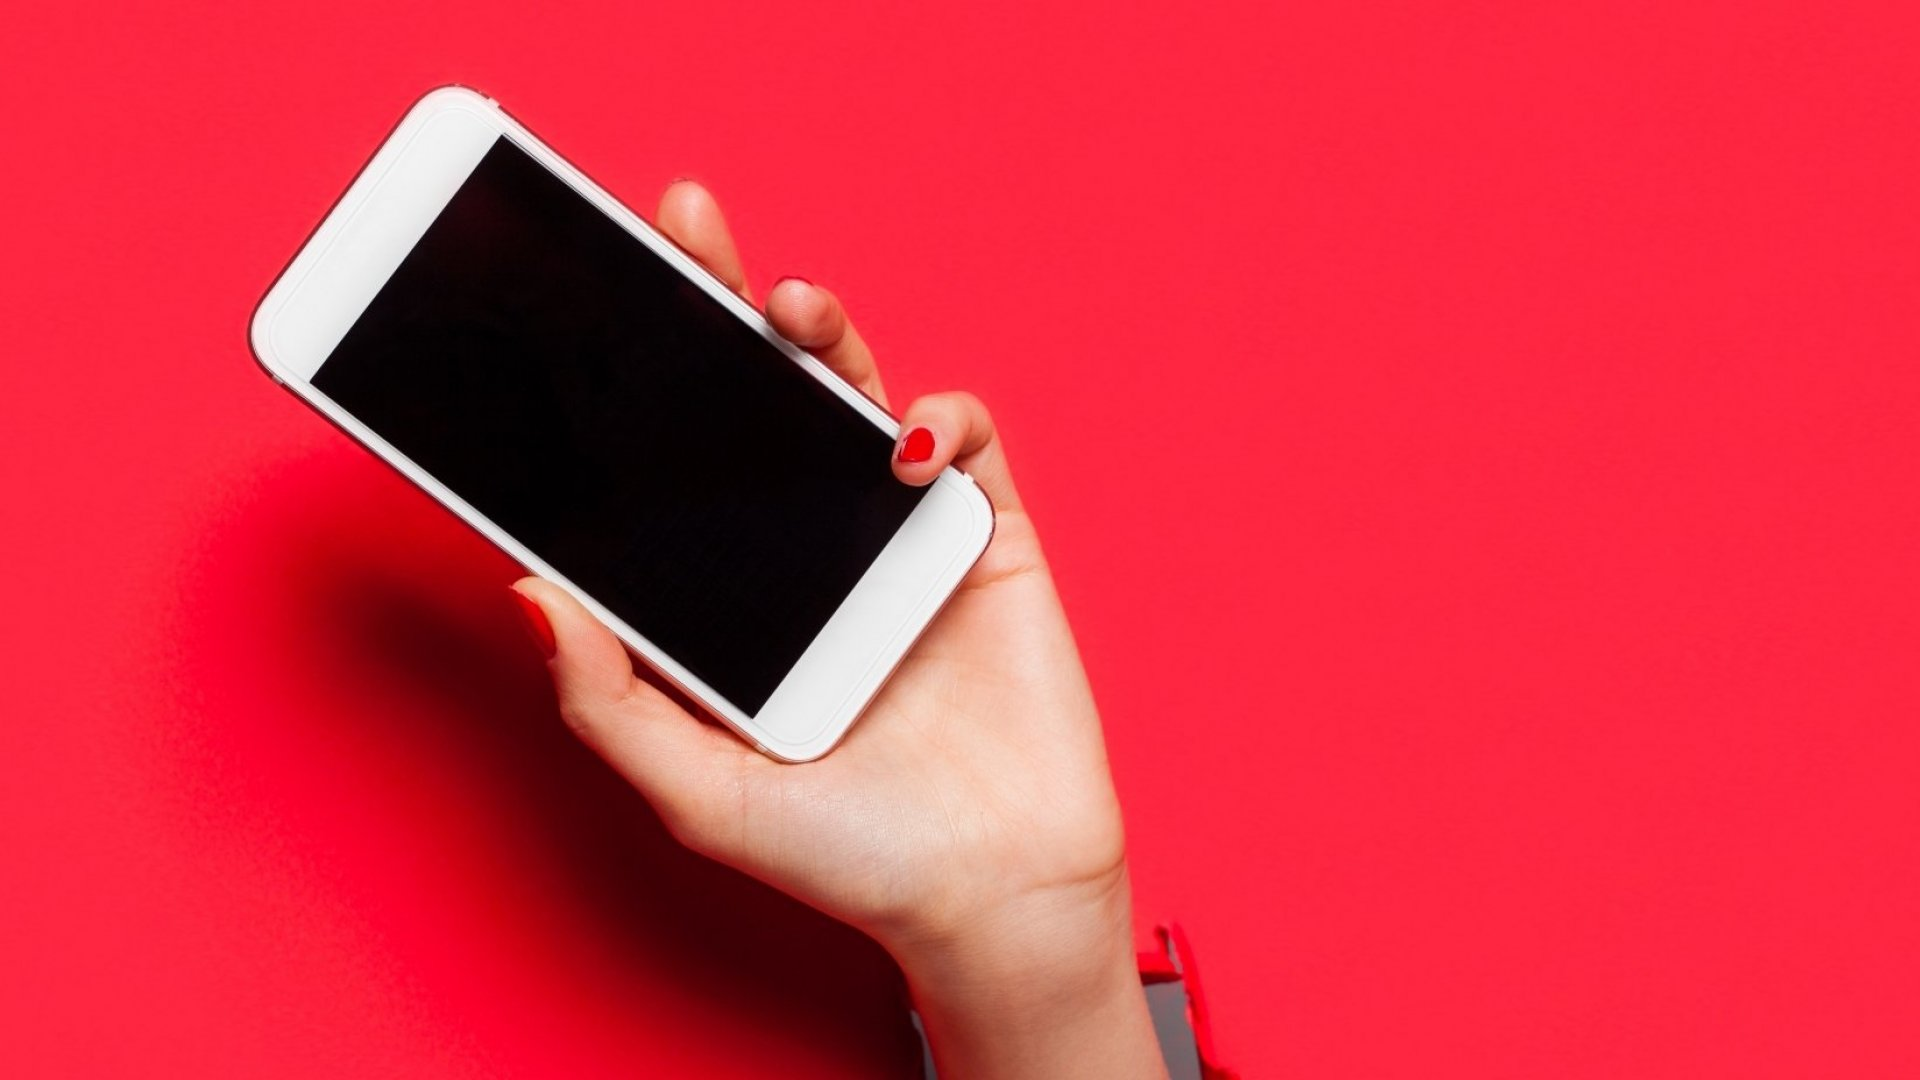 Here's What's Possibly Causing Your Smartphone Separation Anxiety